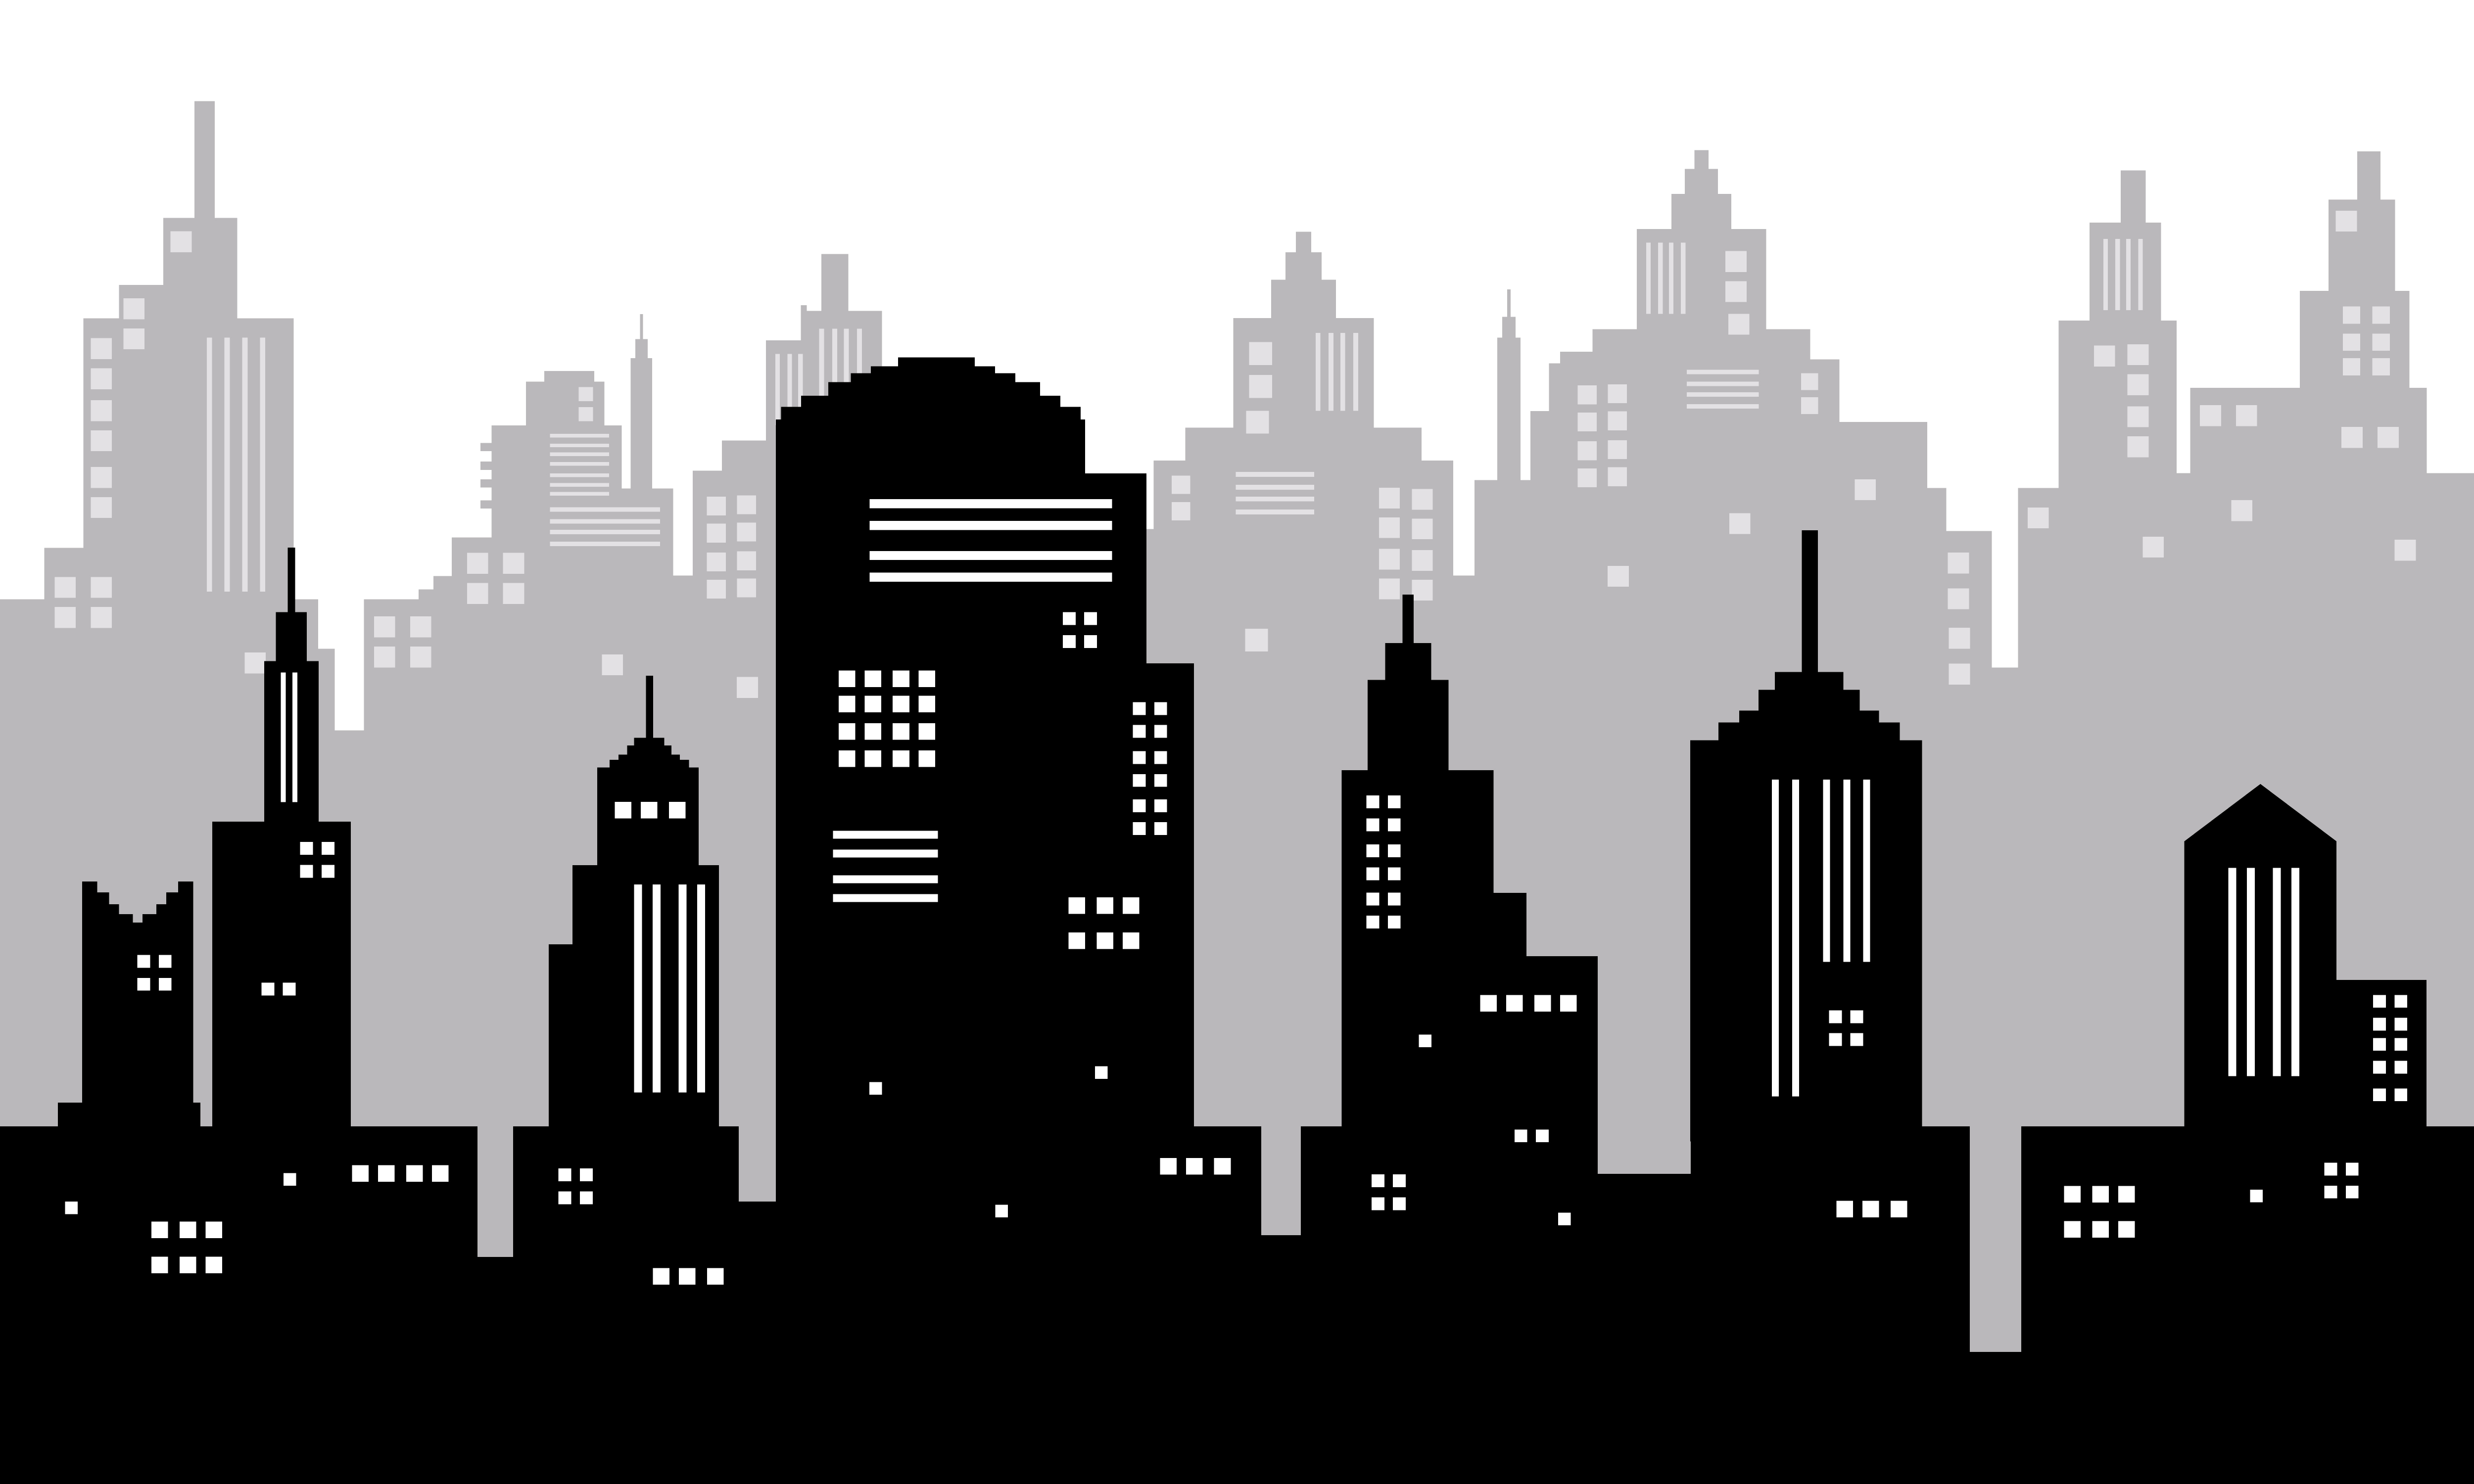 Download Free White Background With City Silhouette Graphic By Cityvector91 for Cricut Explore, Silhouette and other cutting machines.